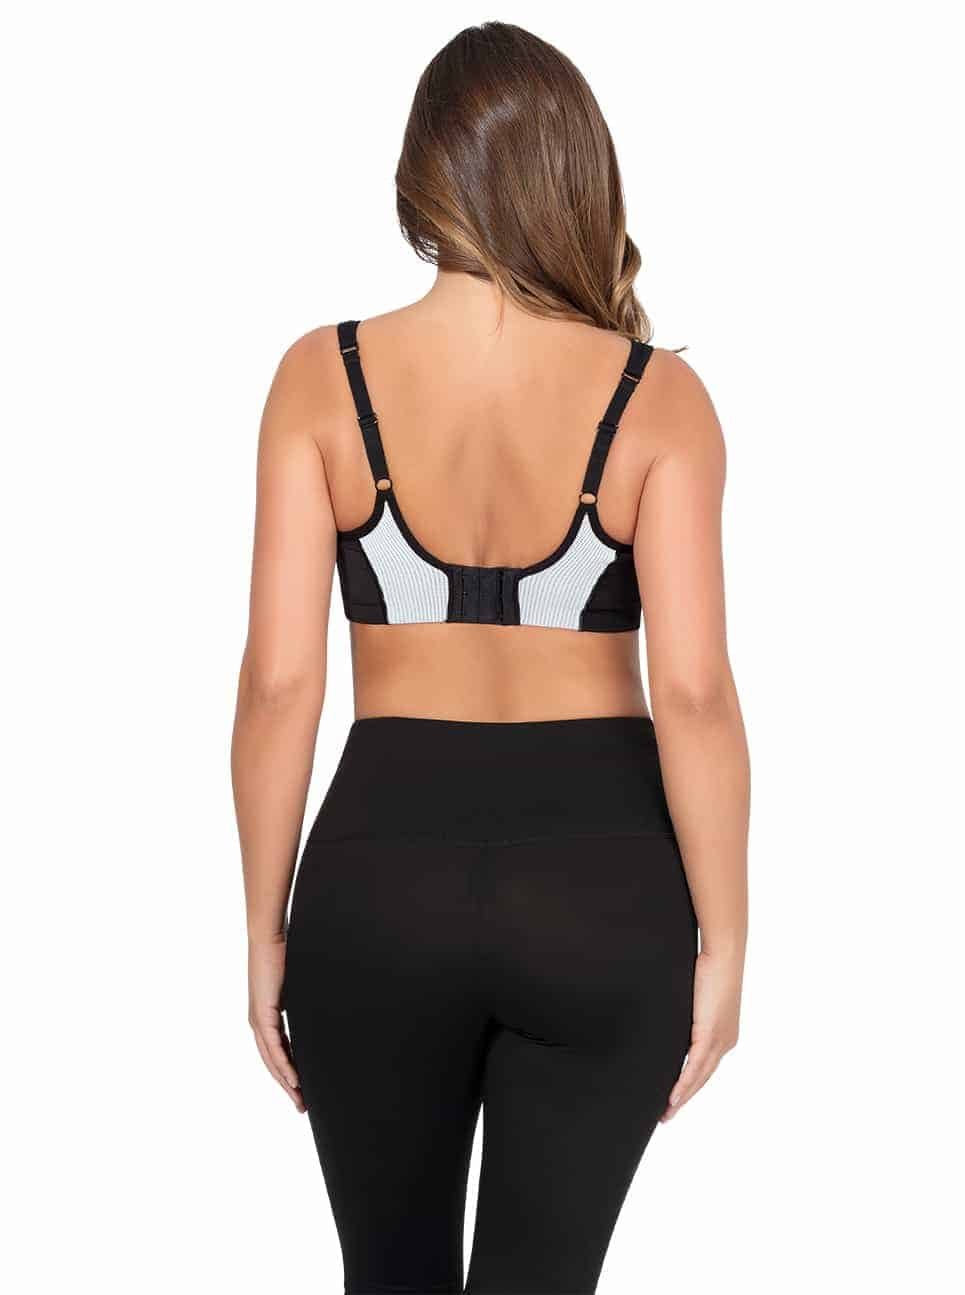 ParfaitActive SportsBraP5541 Black Back - Dynamic Sports Bra - Black - P5541